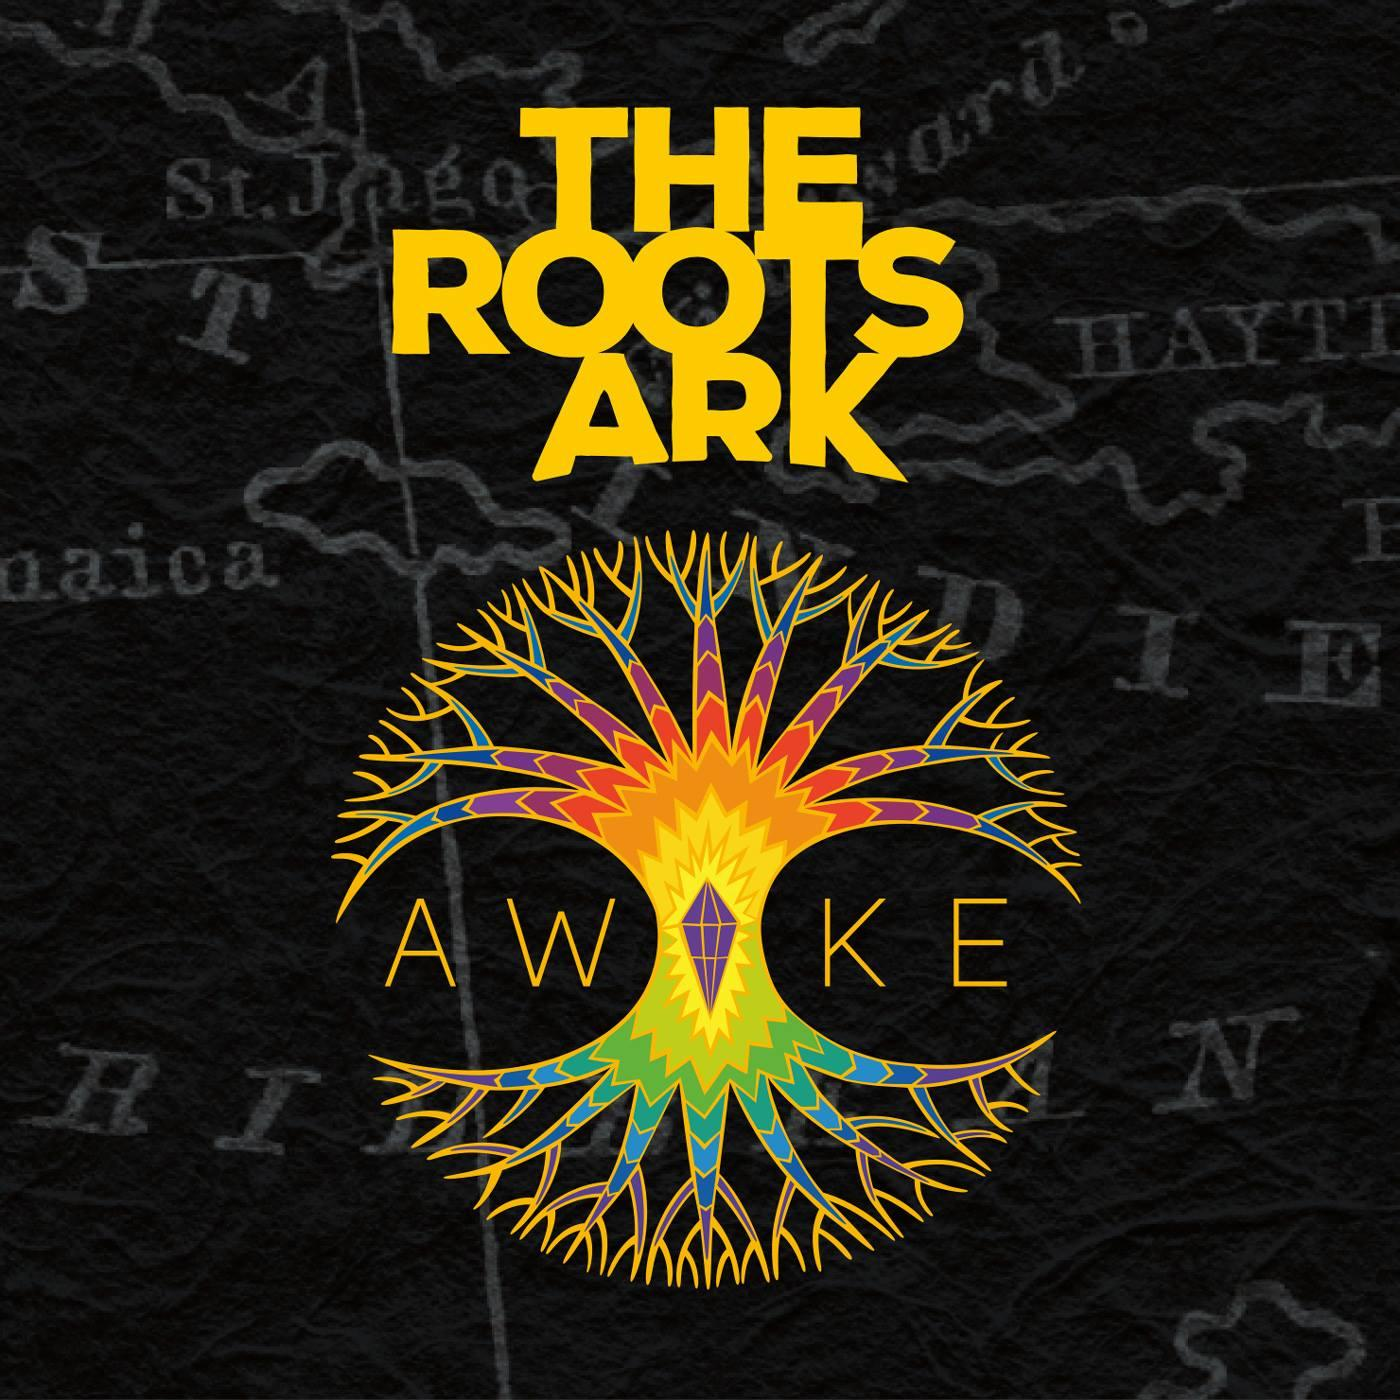 Awake de The Roots Ark